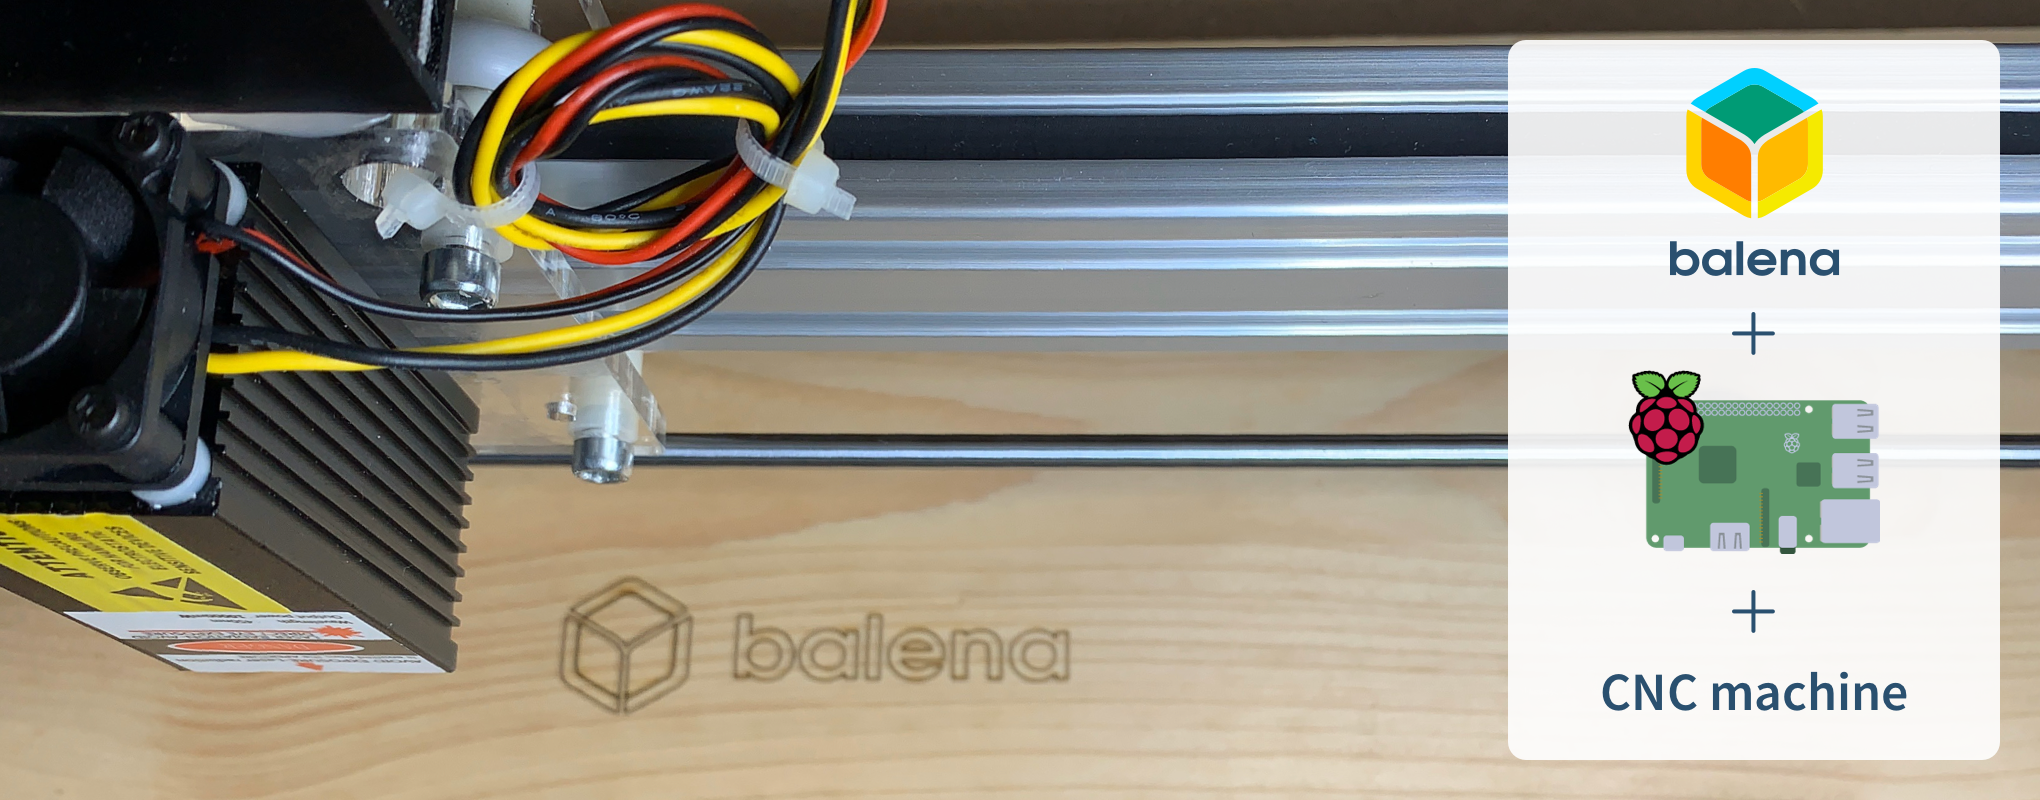 Here's a balena logo scribed by one of my shop machines